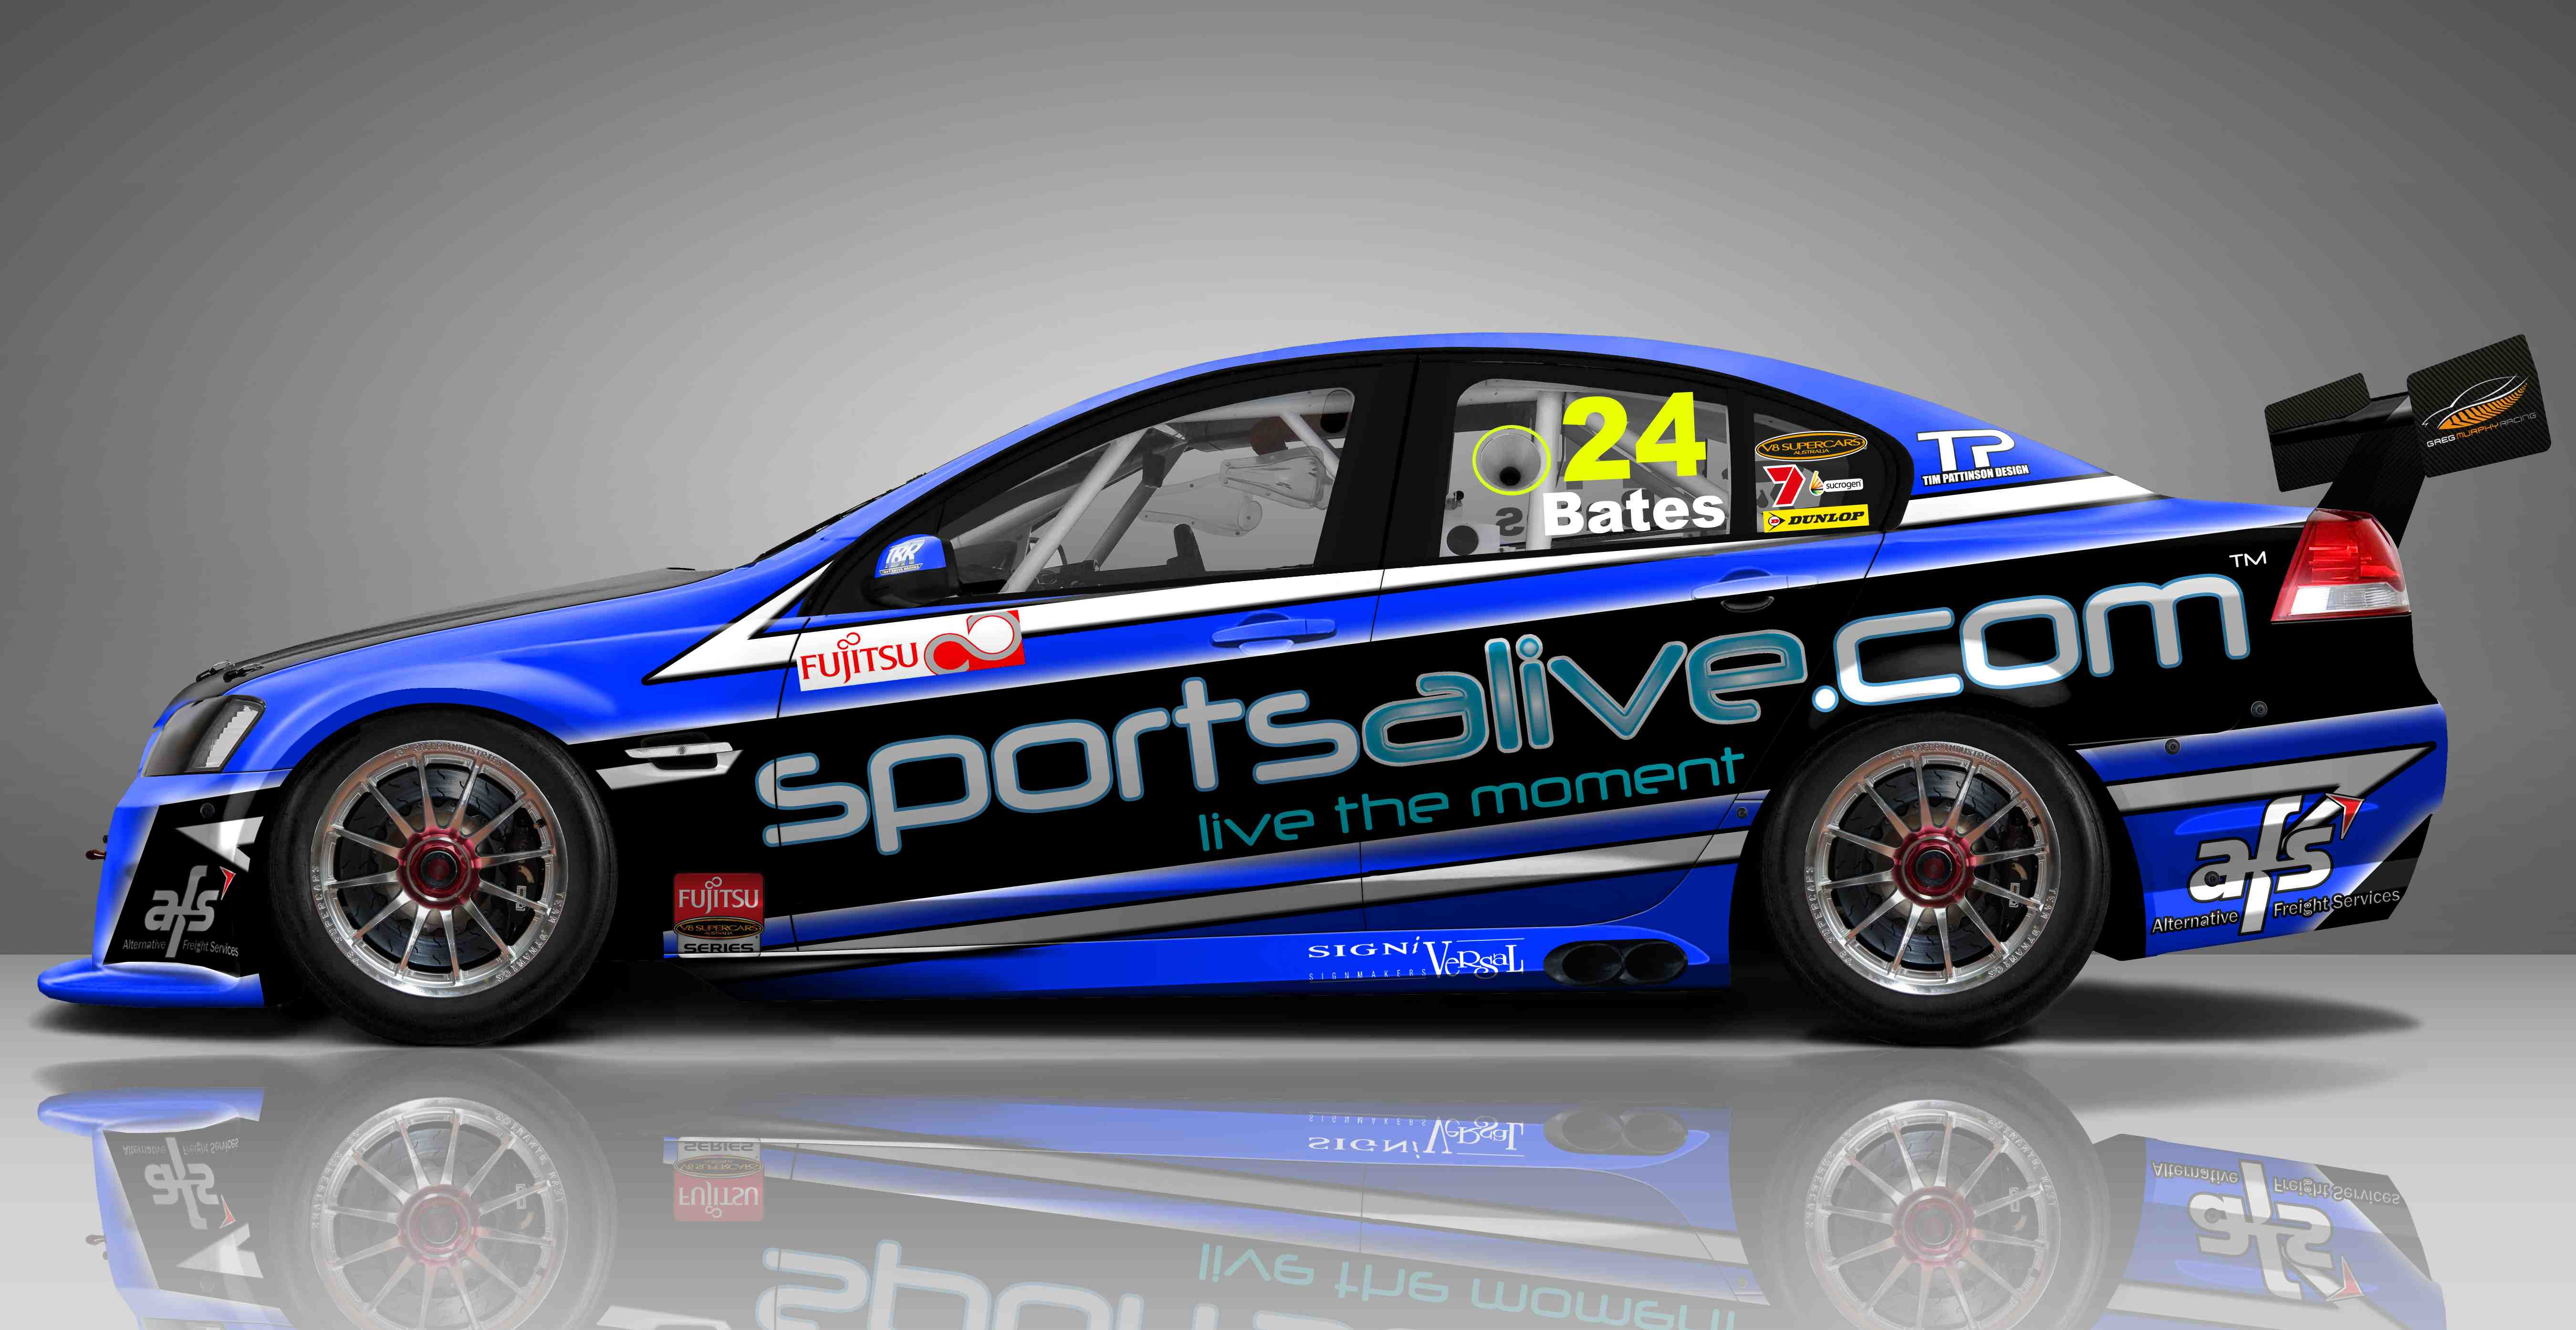 v8 supercars live stream Hd Wallpapers 5399x2788